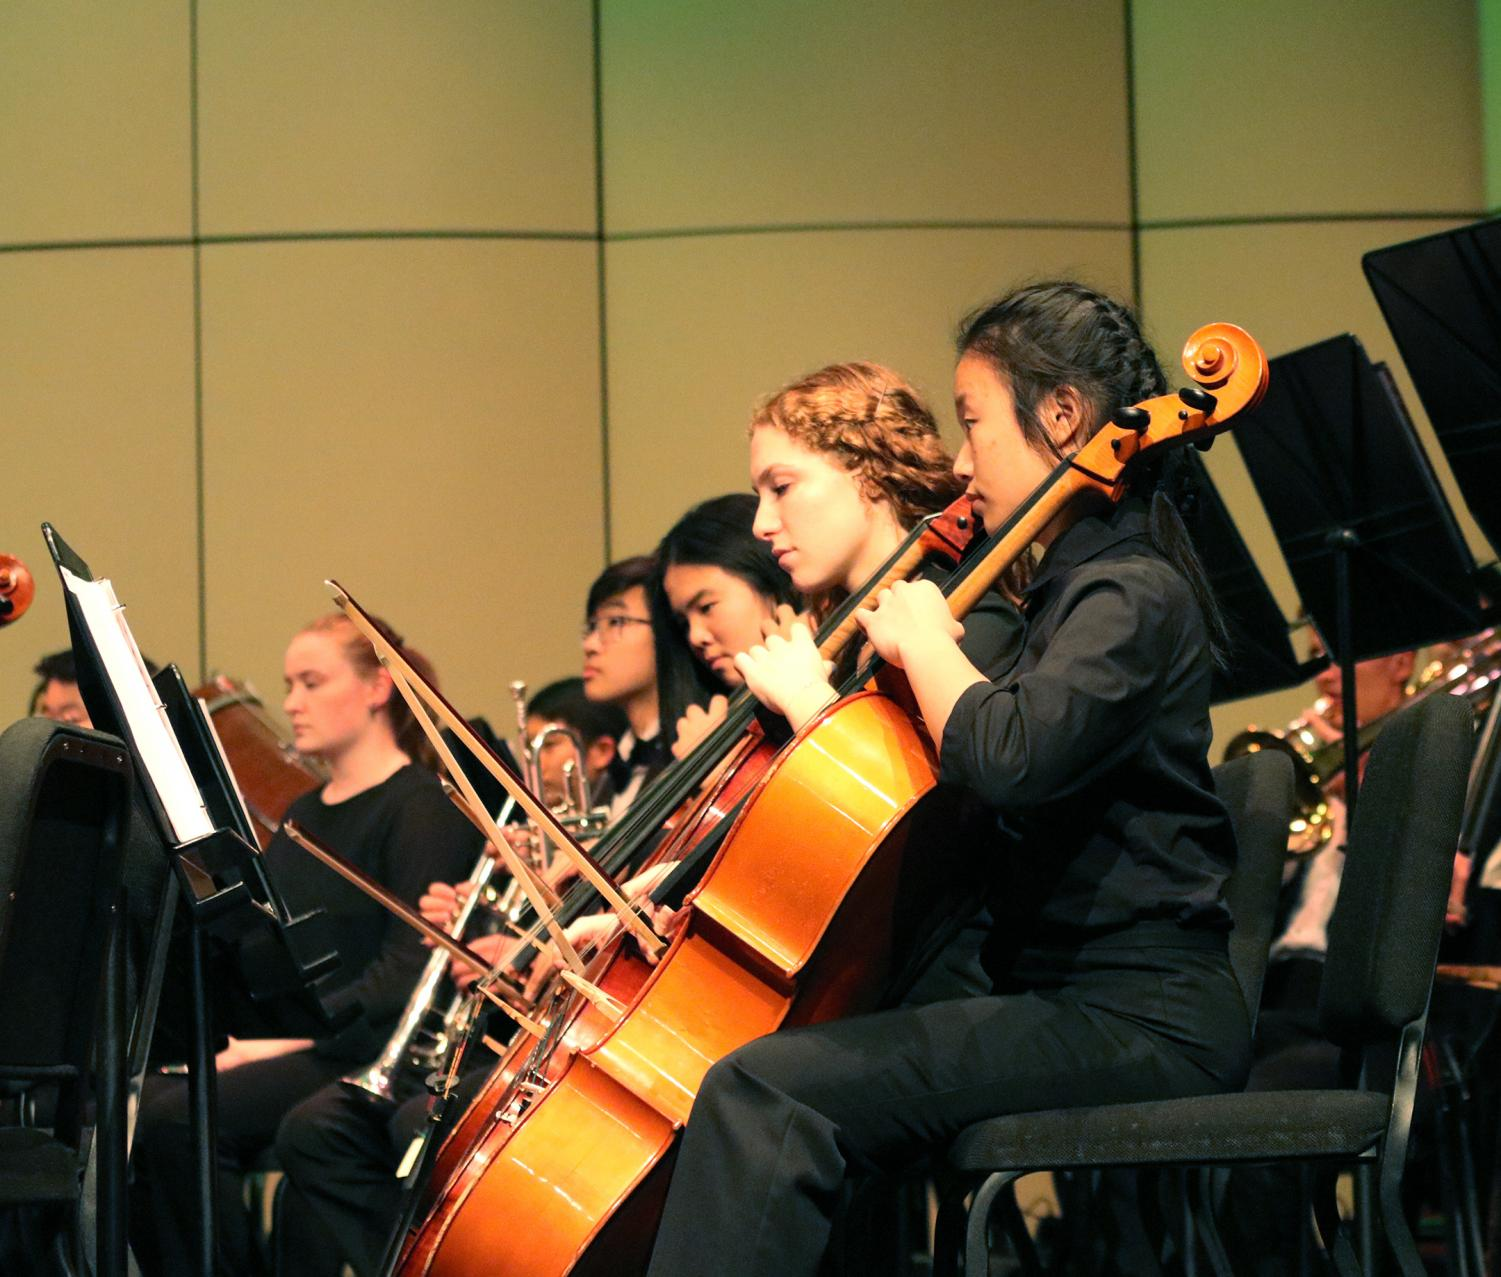 SEASON PREMIERE: Senior Hannah Chernin (fourth from left) plays cello in the Evergreen Season Premiere. She enjoyed playing the selection of music with other talented musicians.